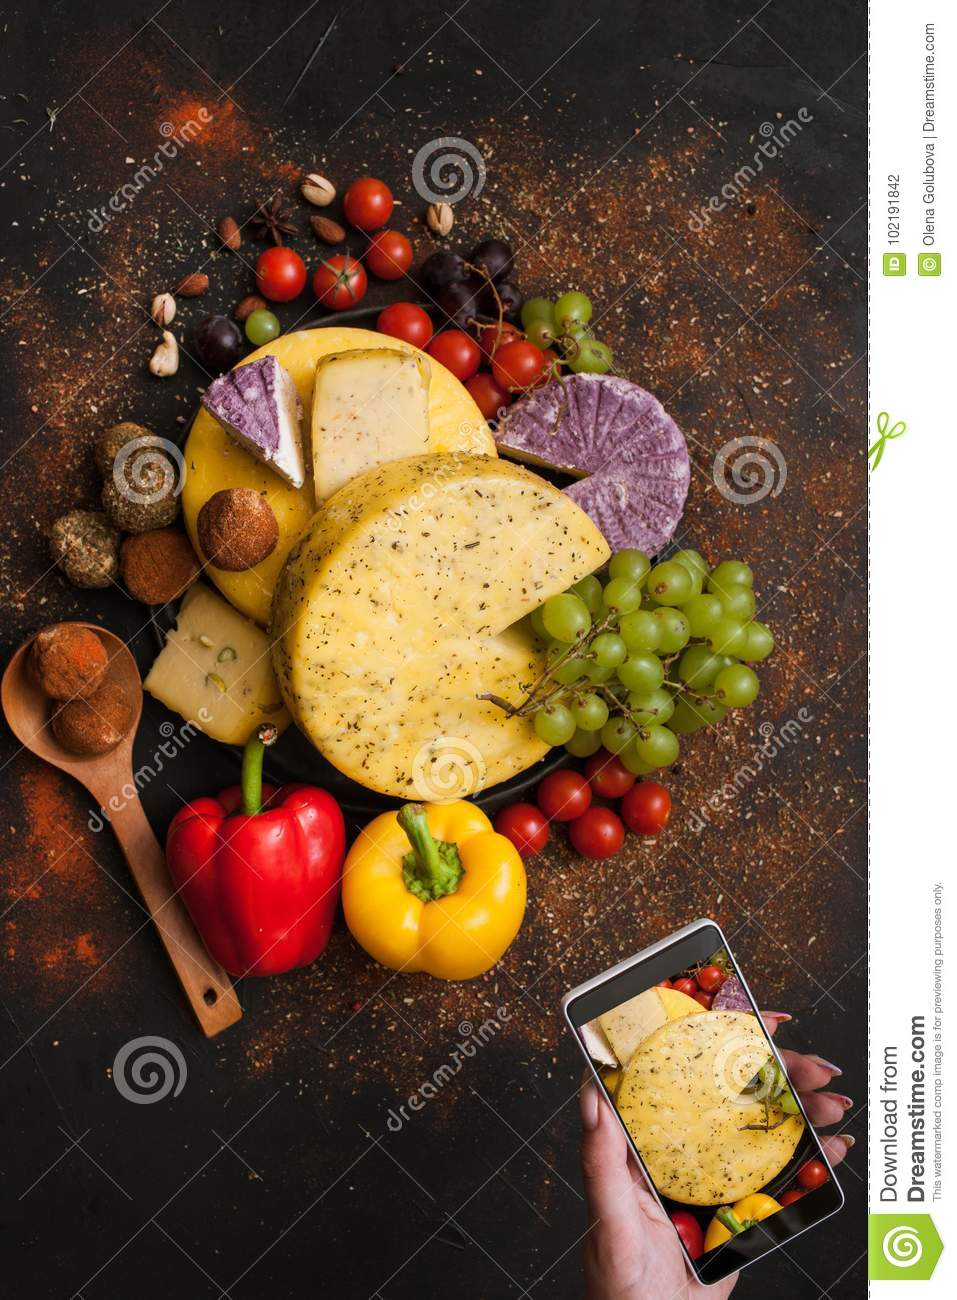 Food photography of rustic dairy. Cheese